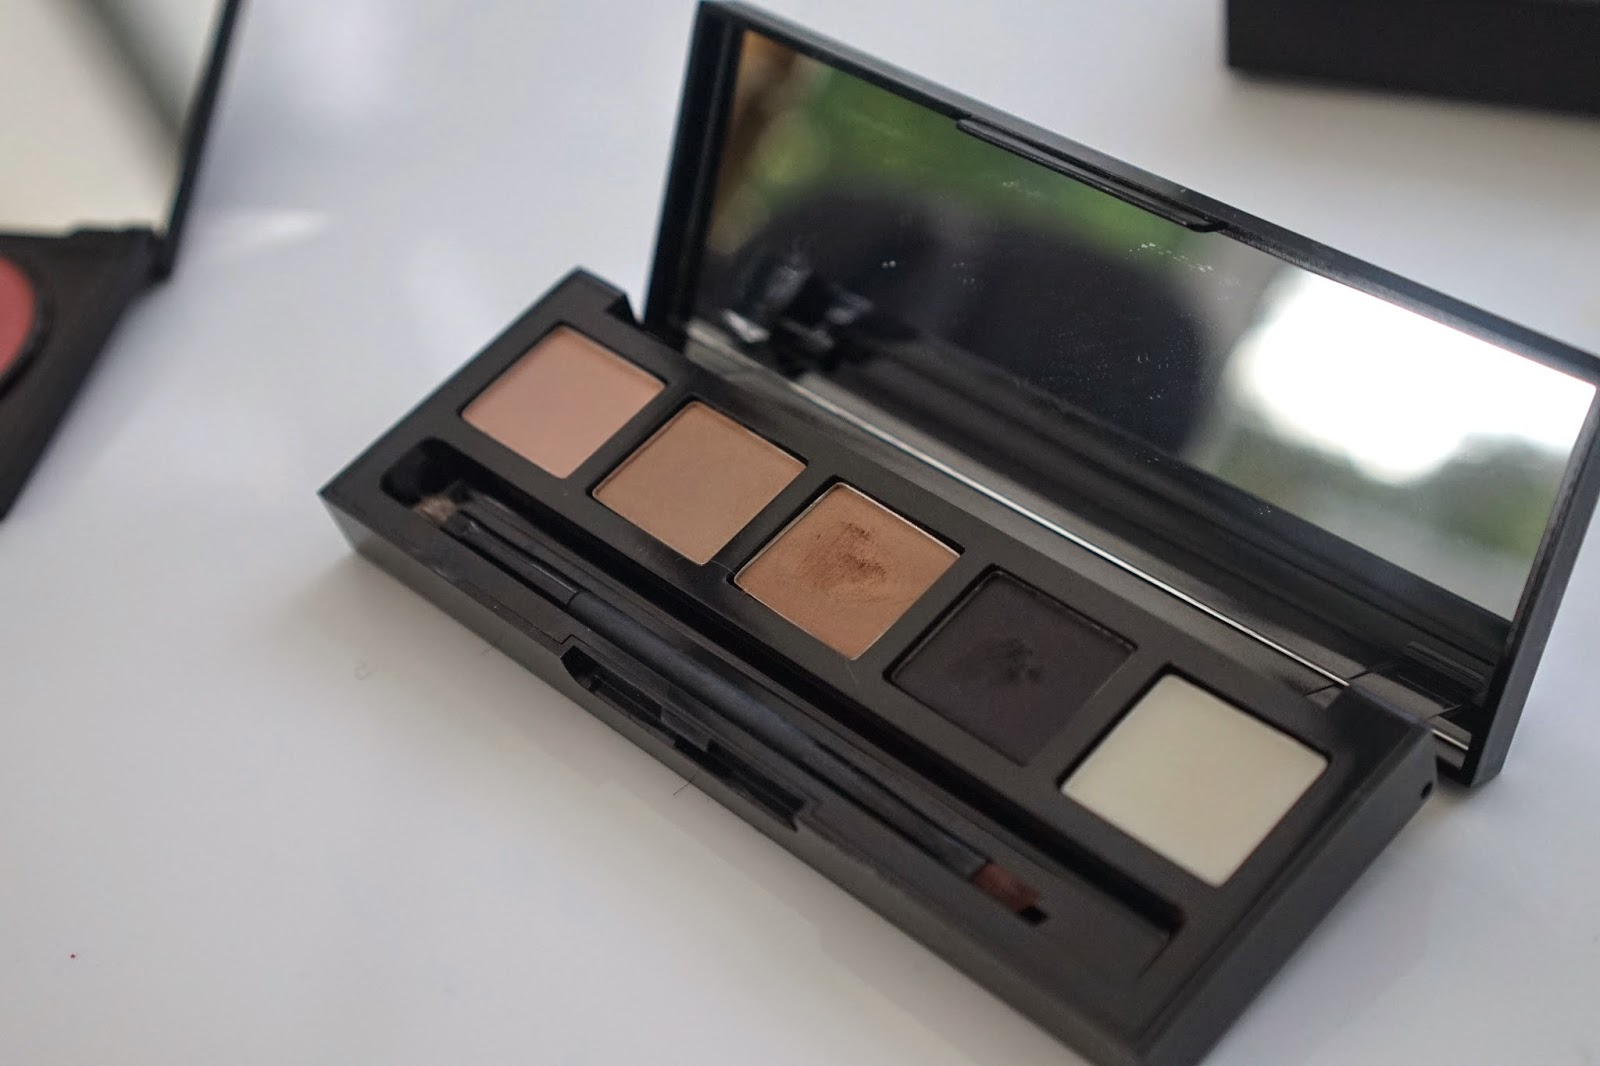 HD Brows eye palette